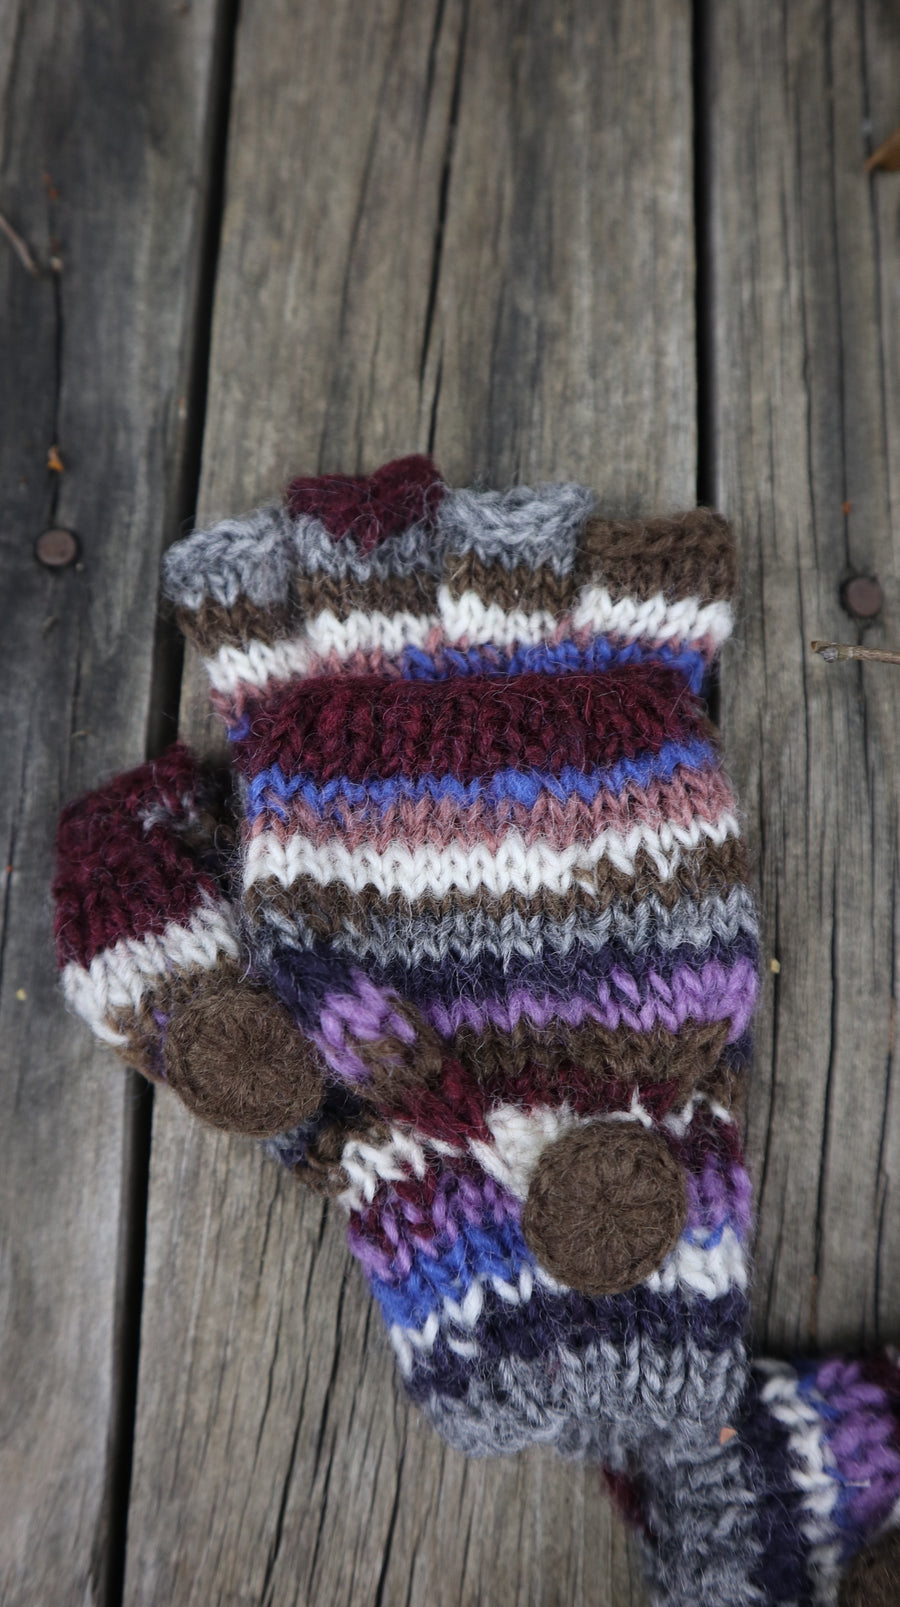 Fair Trade Ethical Children's Striped Fingerless Gloves with Cap in Brown, Grey and Blue